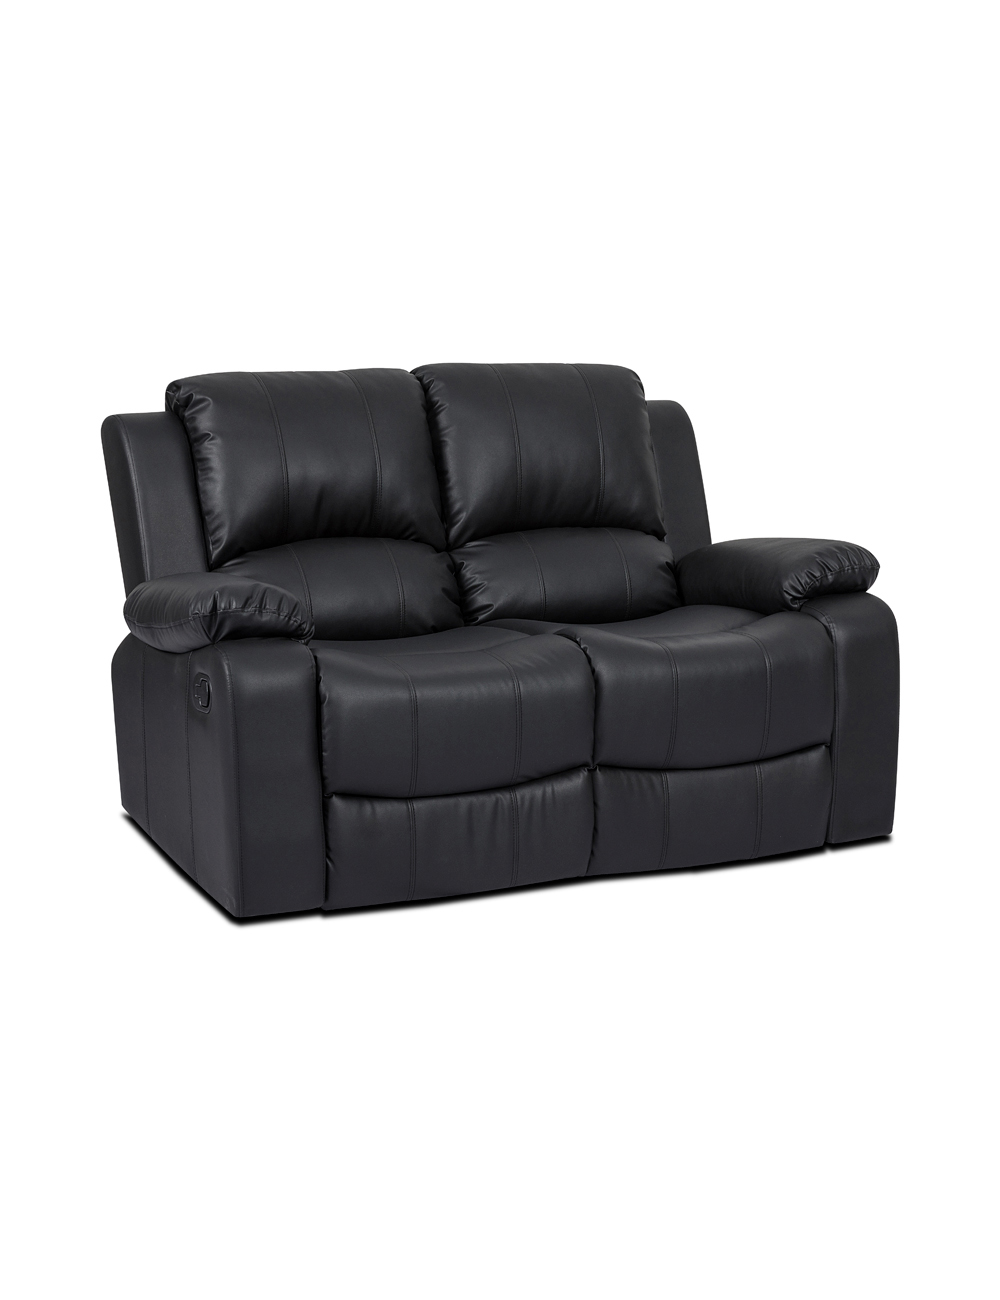 relax sofa boston 2 sitzer. Black Bedroom Furniture Sets. Home Design Ideas